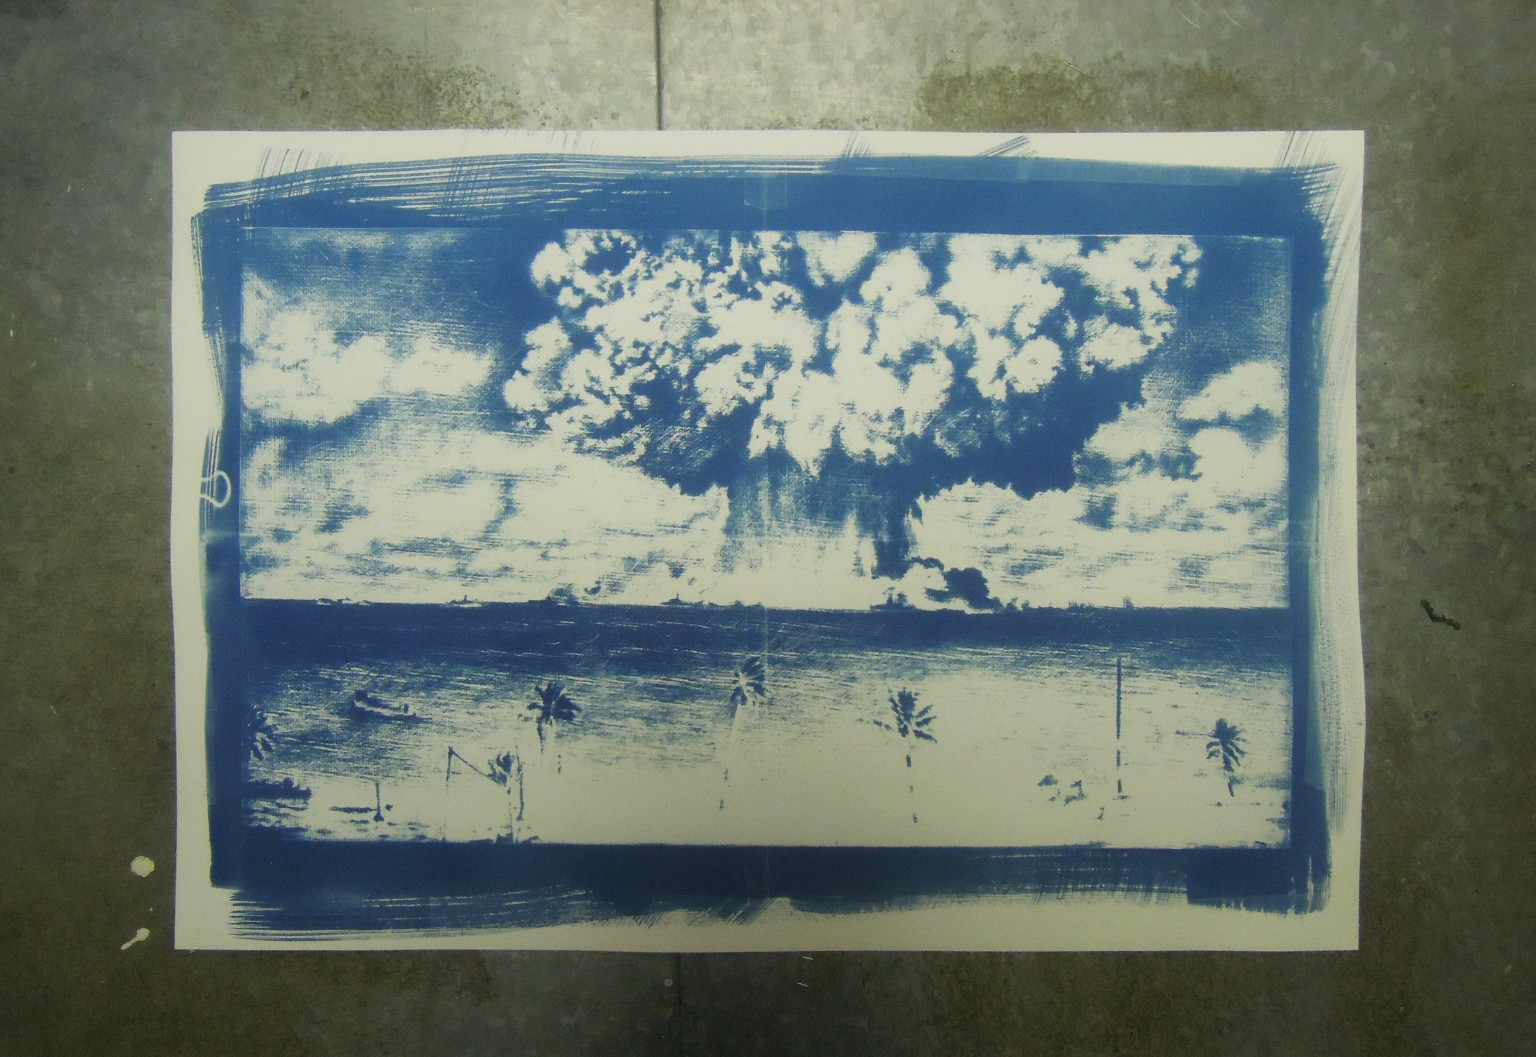 cyanotype baker, nuclear tests, atomic, kirsty harris